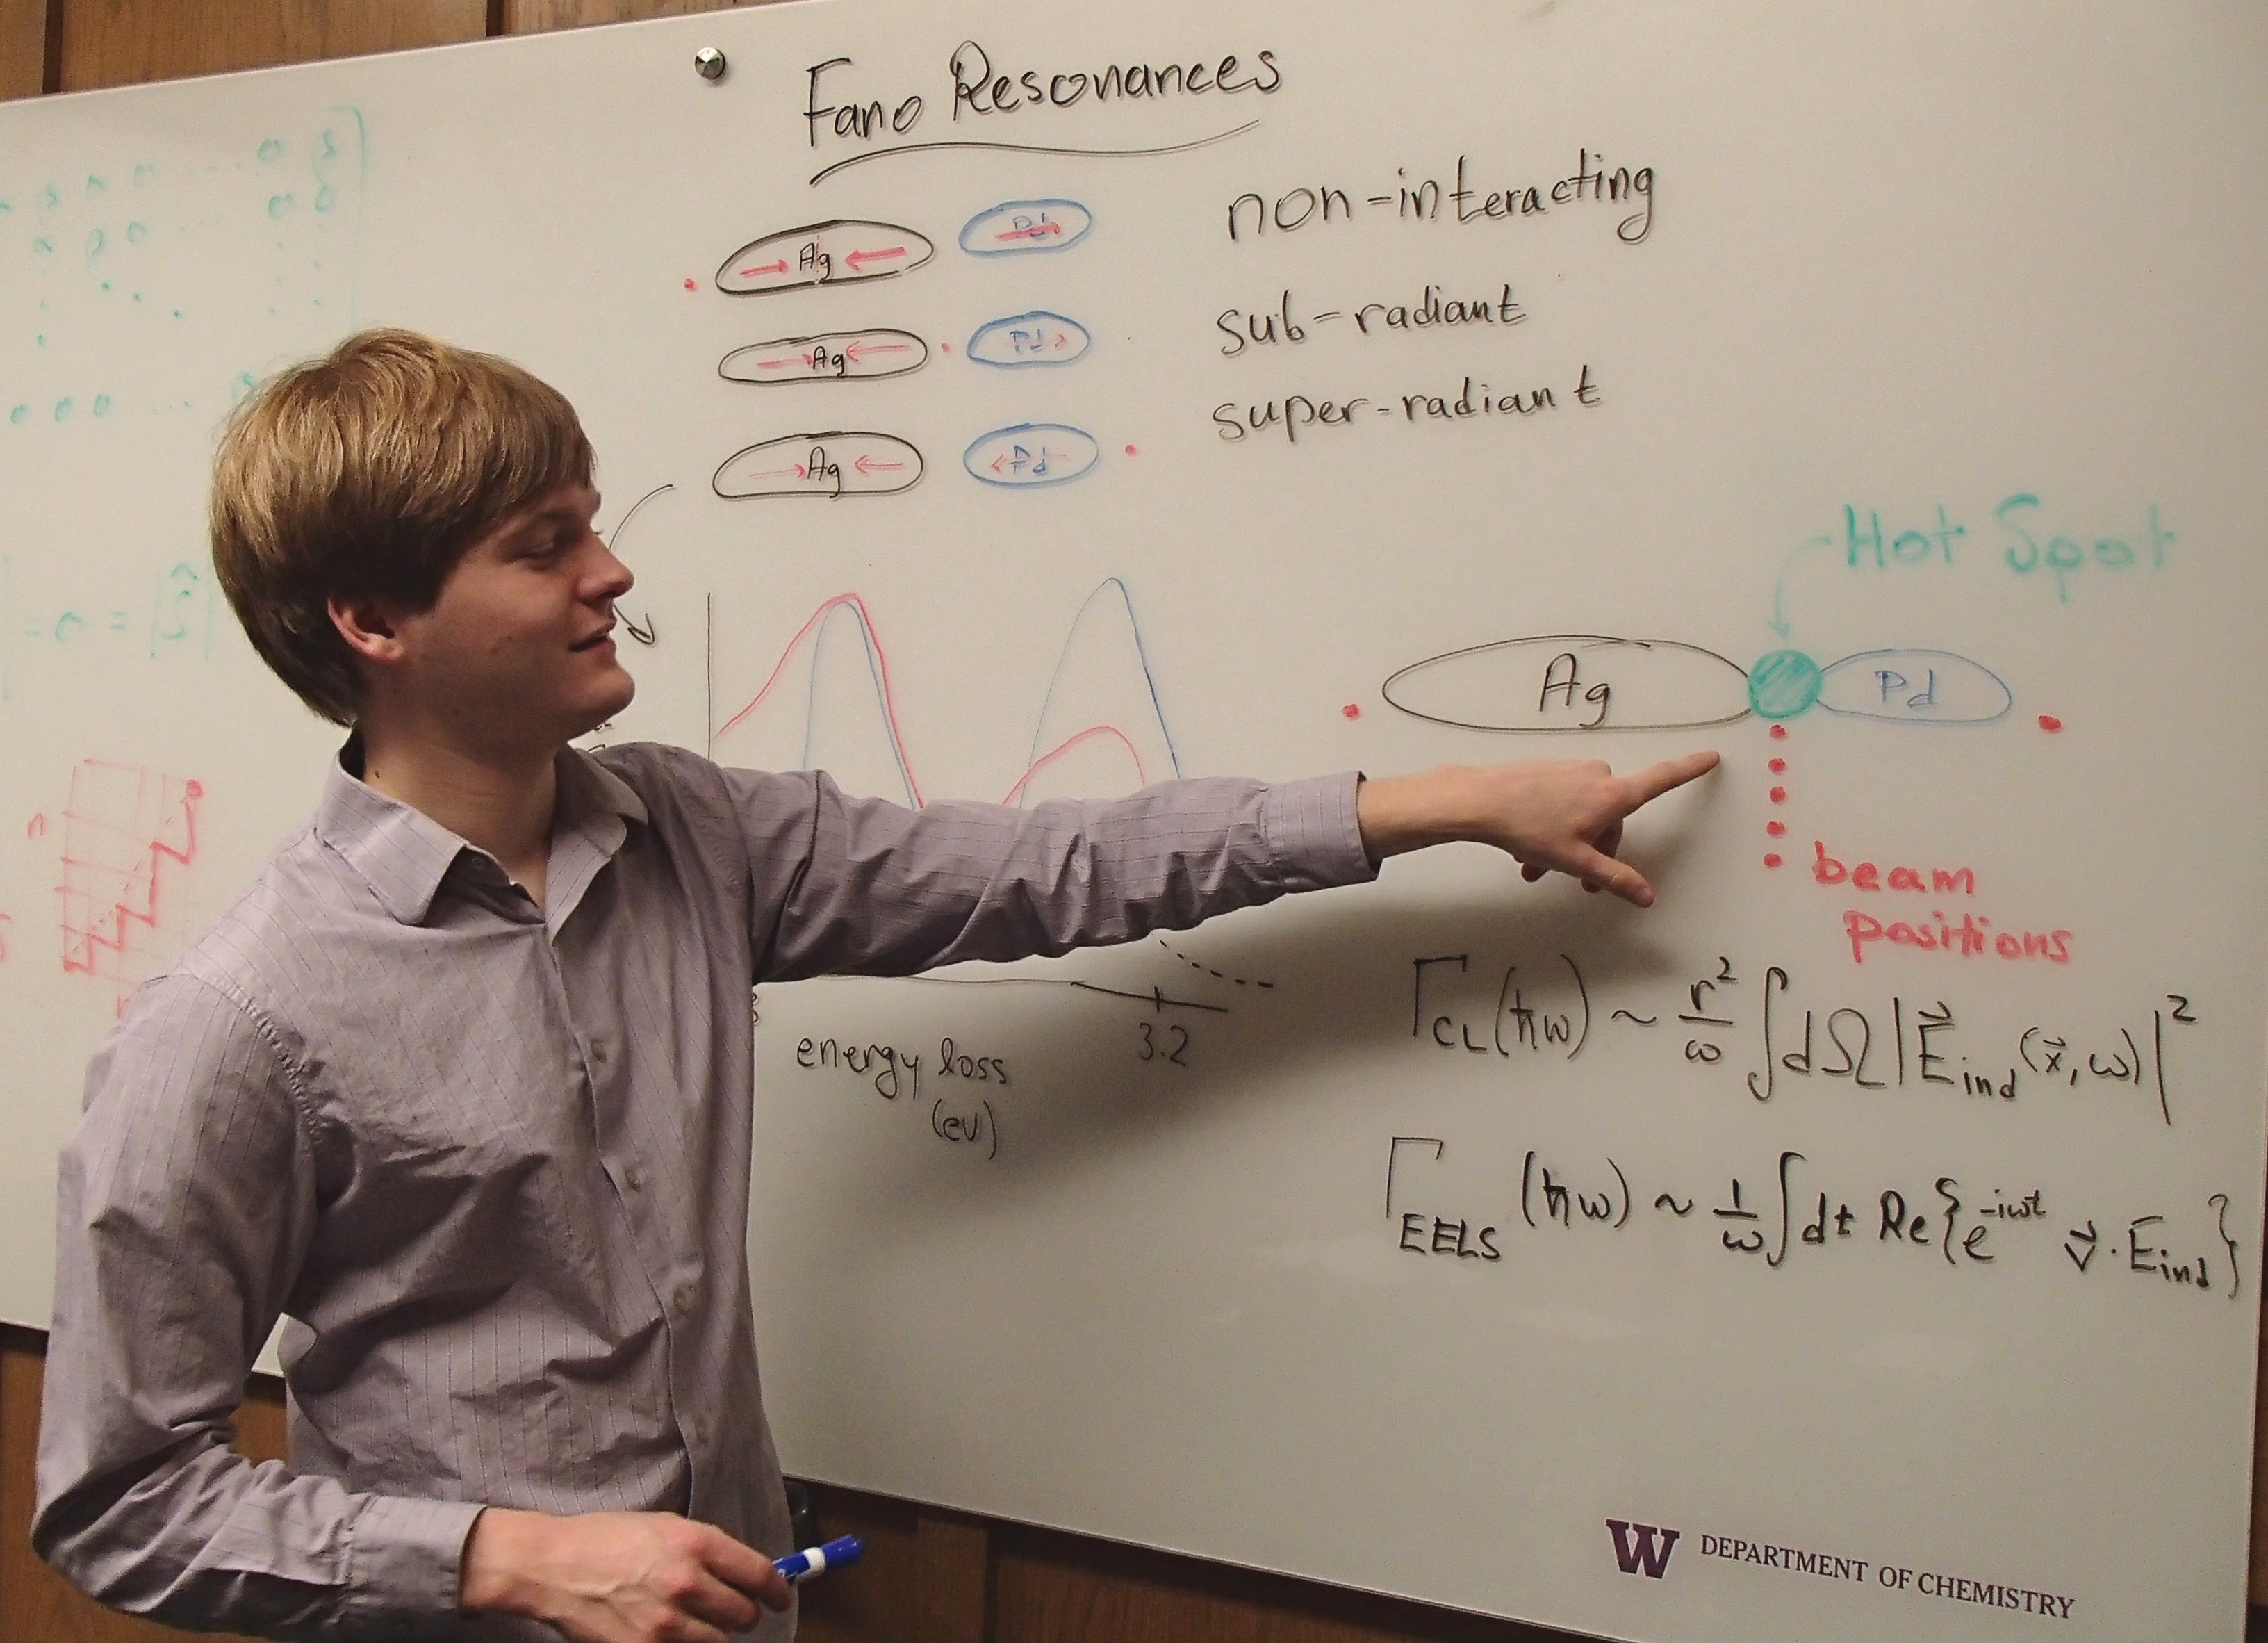 Alex Vaschillo explaining research at the whiteboard